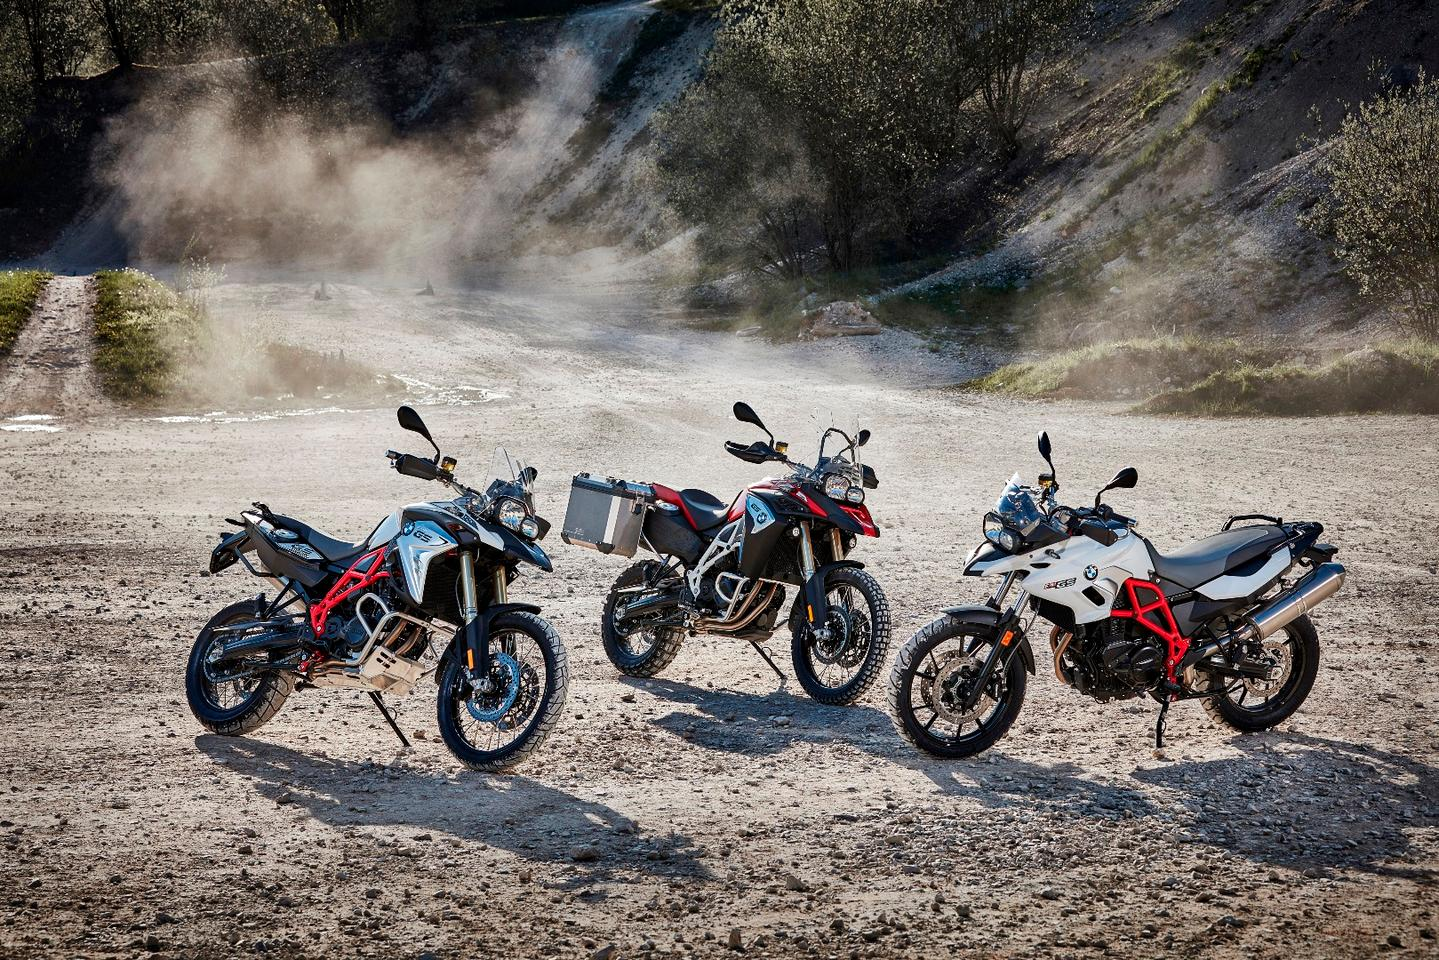 The most important updates announced thus far by BMW concern the F 700/800 GS family